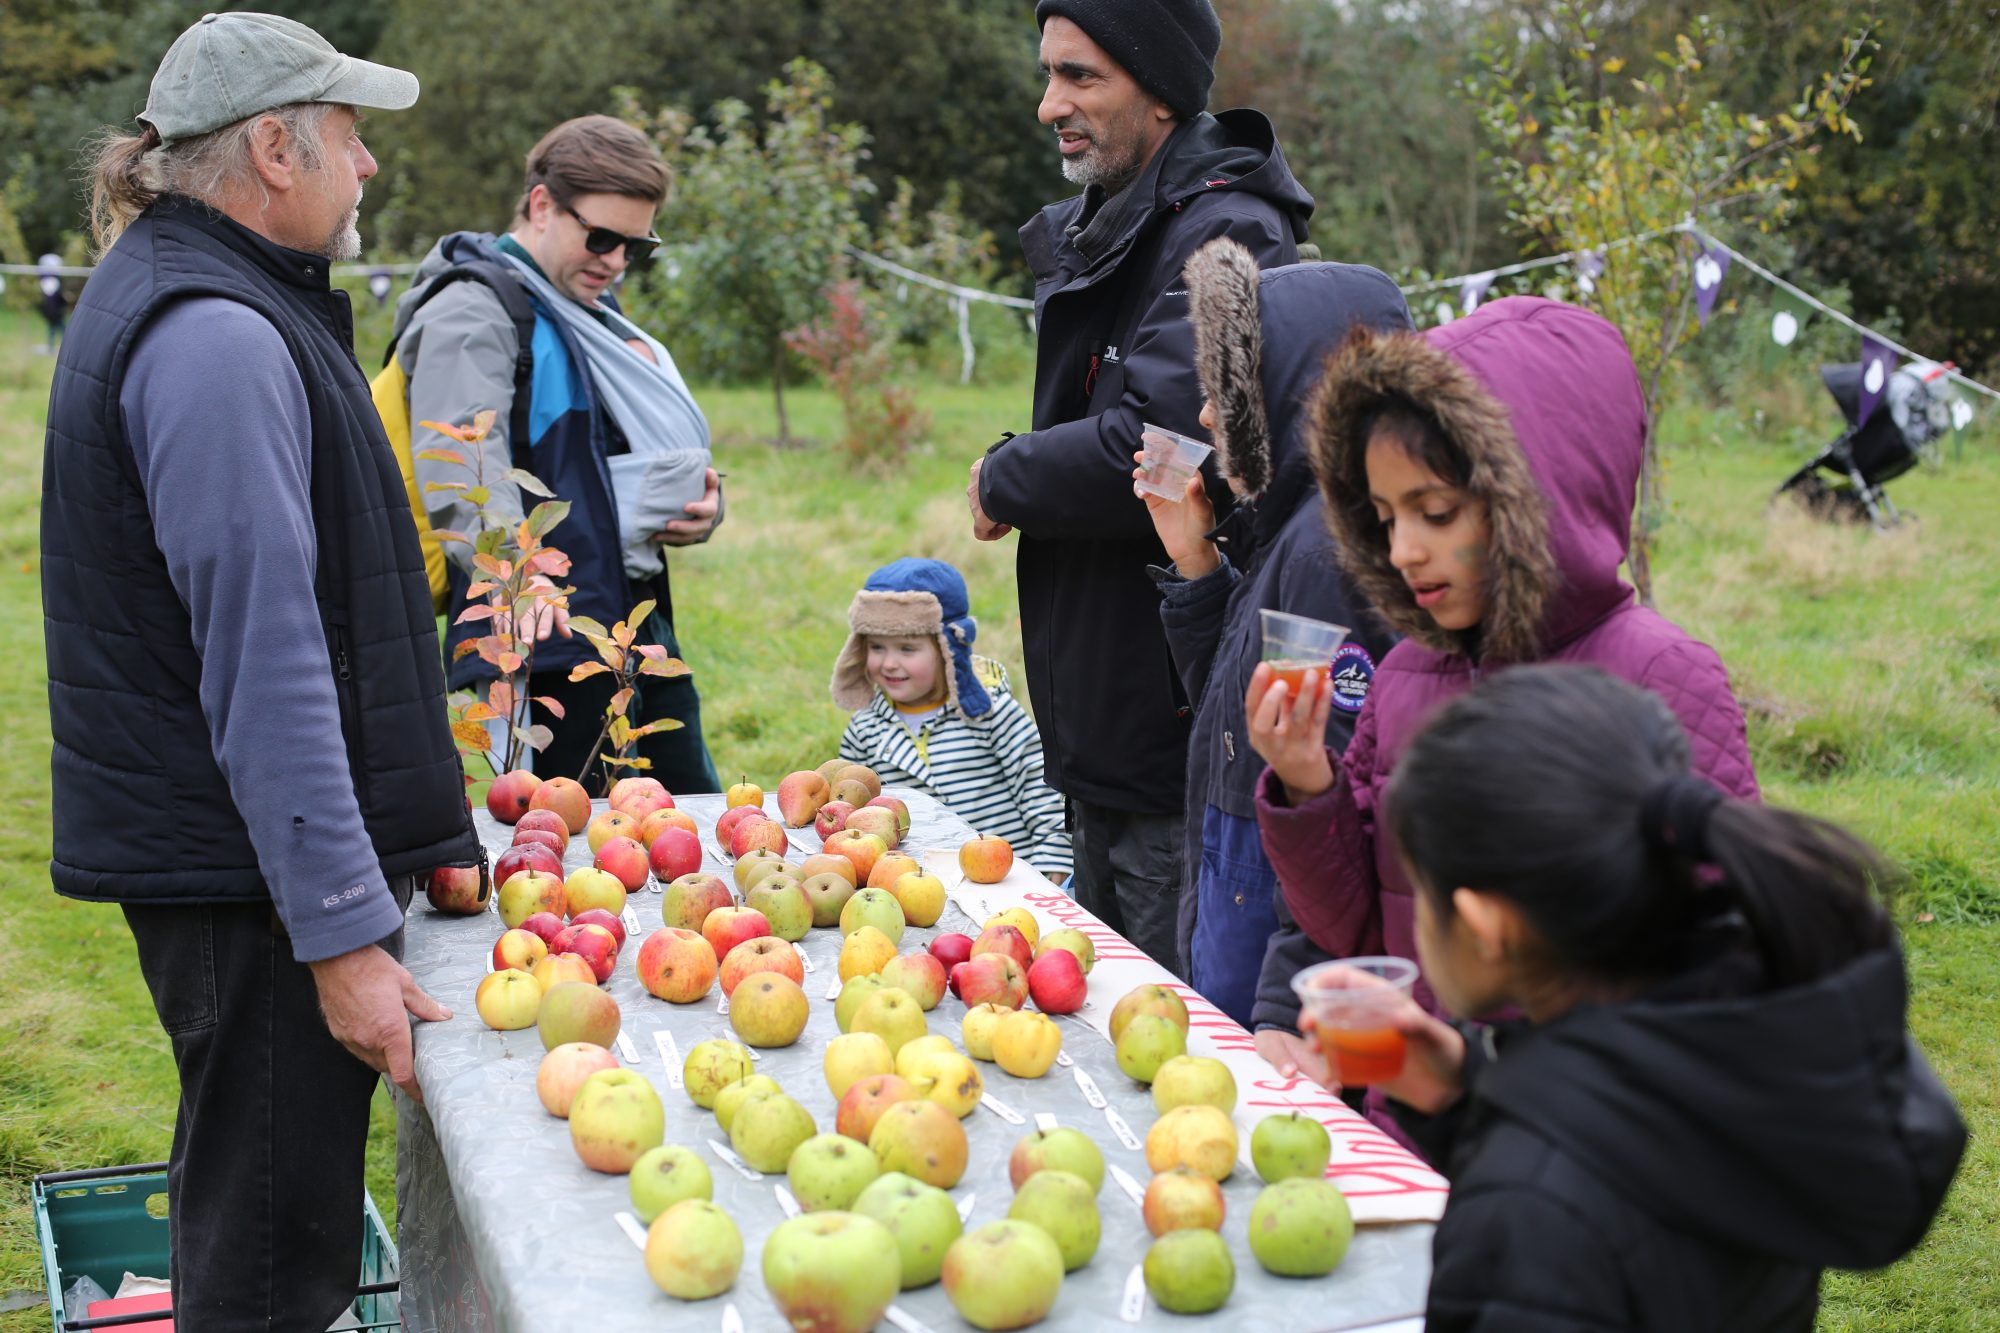 A table of apples with adults and children standing around identifying which kind of apple they are